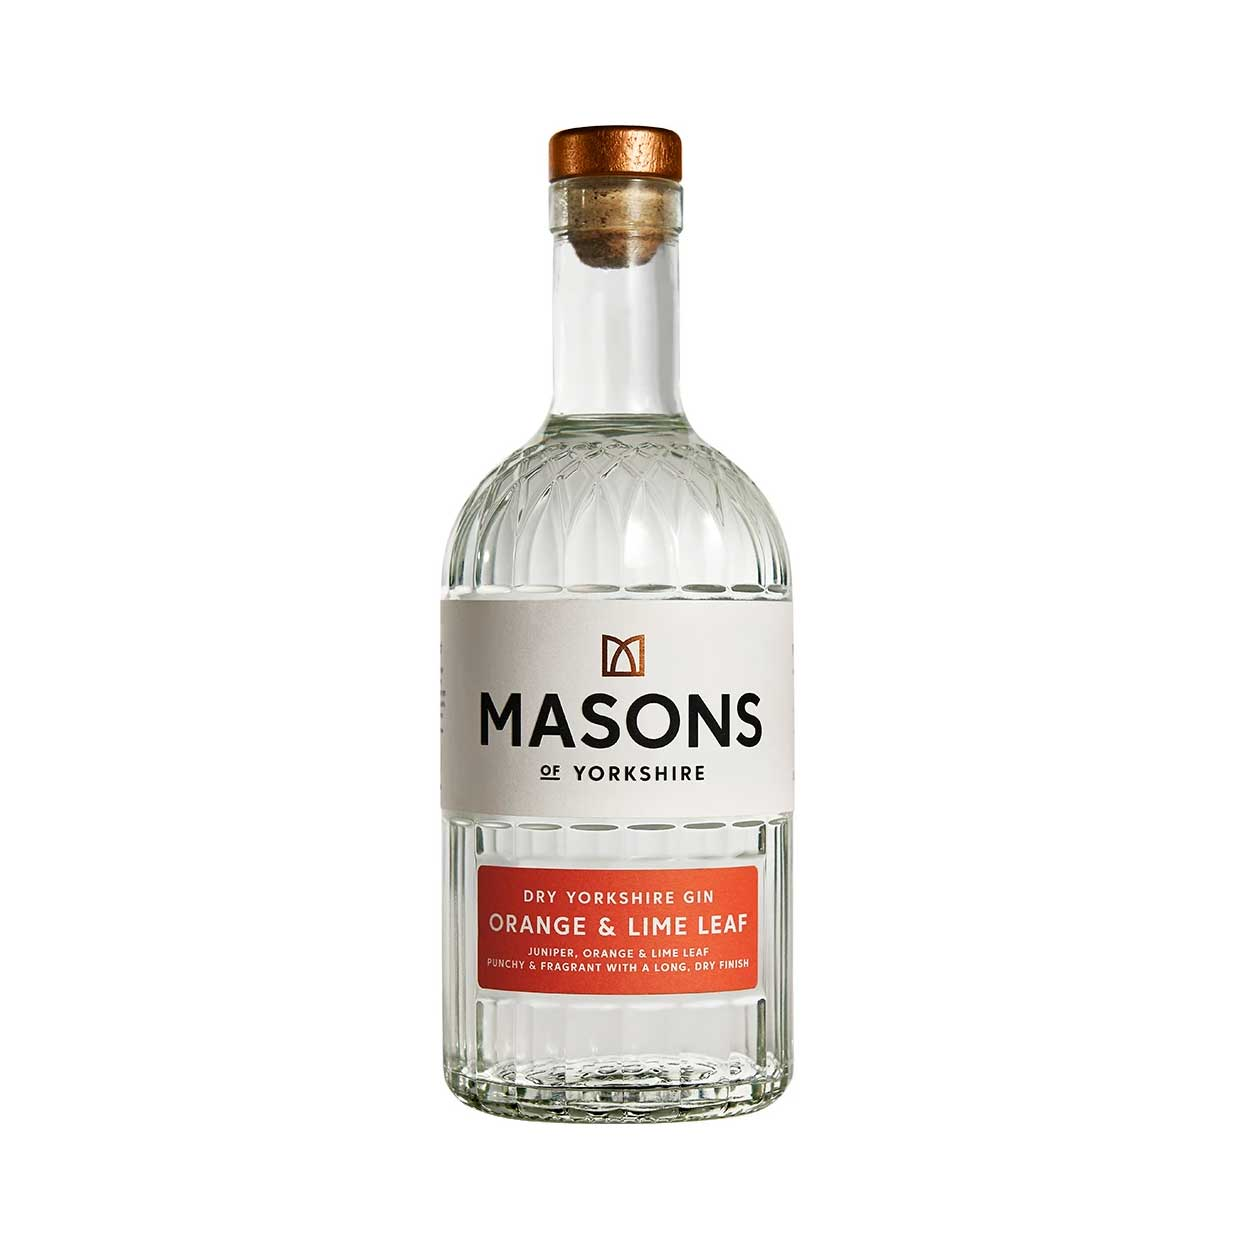 Masons Orange and Lime Leaf Yorkshire Gin Bottle